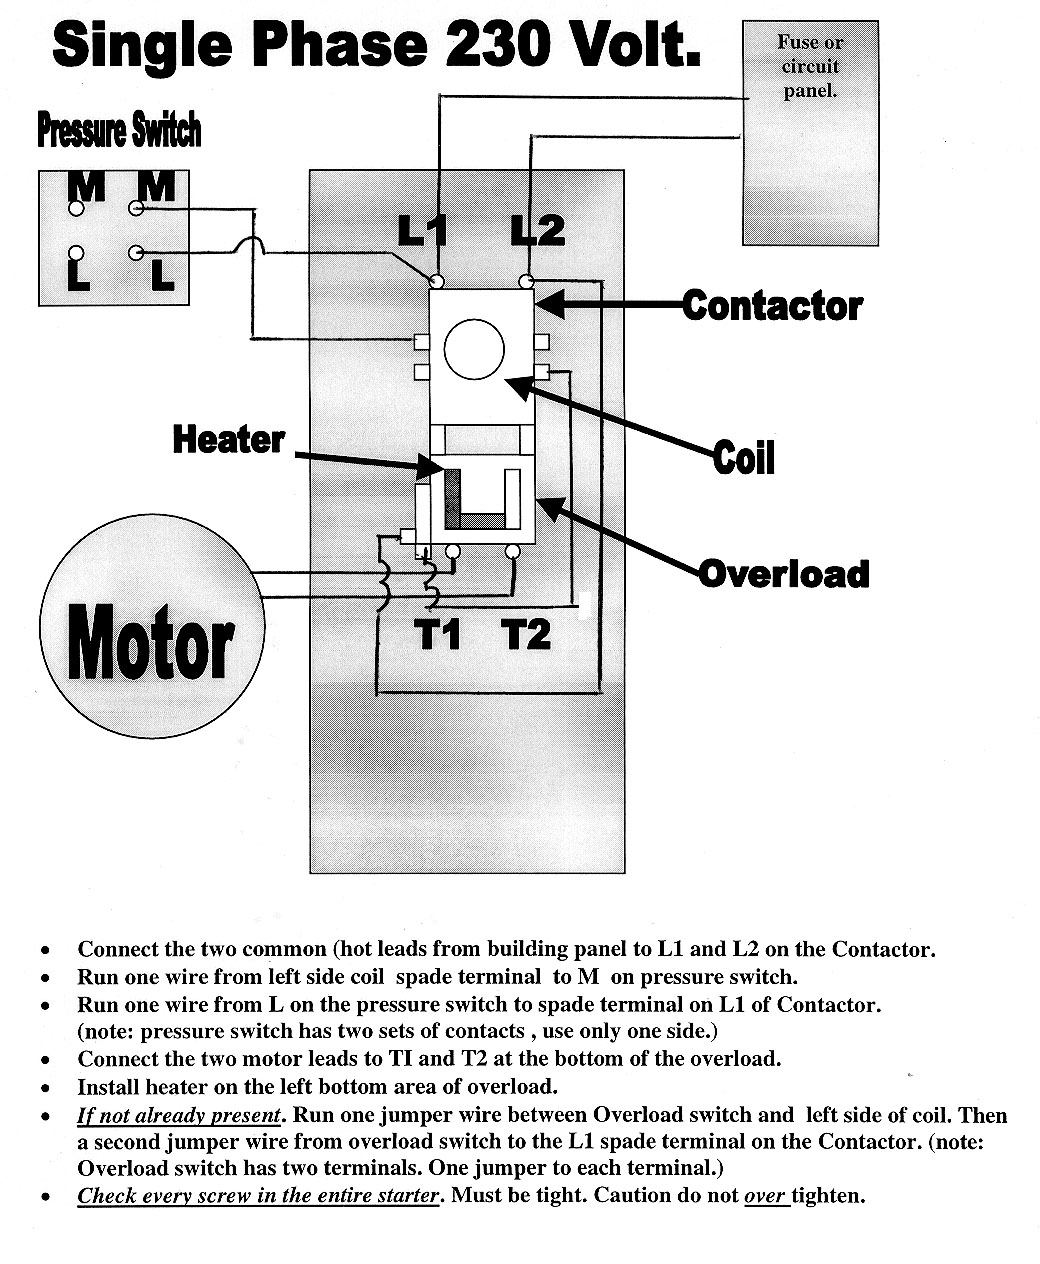 208 Single Phase Lighting Wiring Diagram - Residential Electrical ...